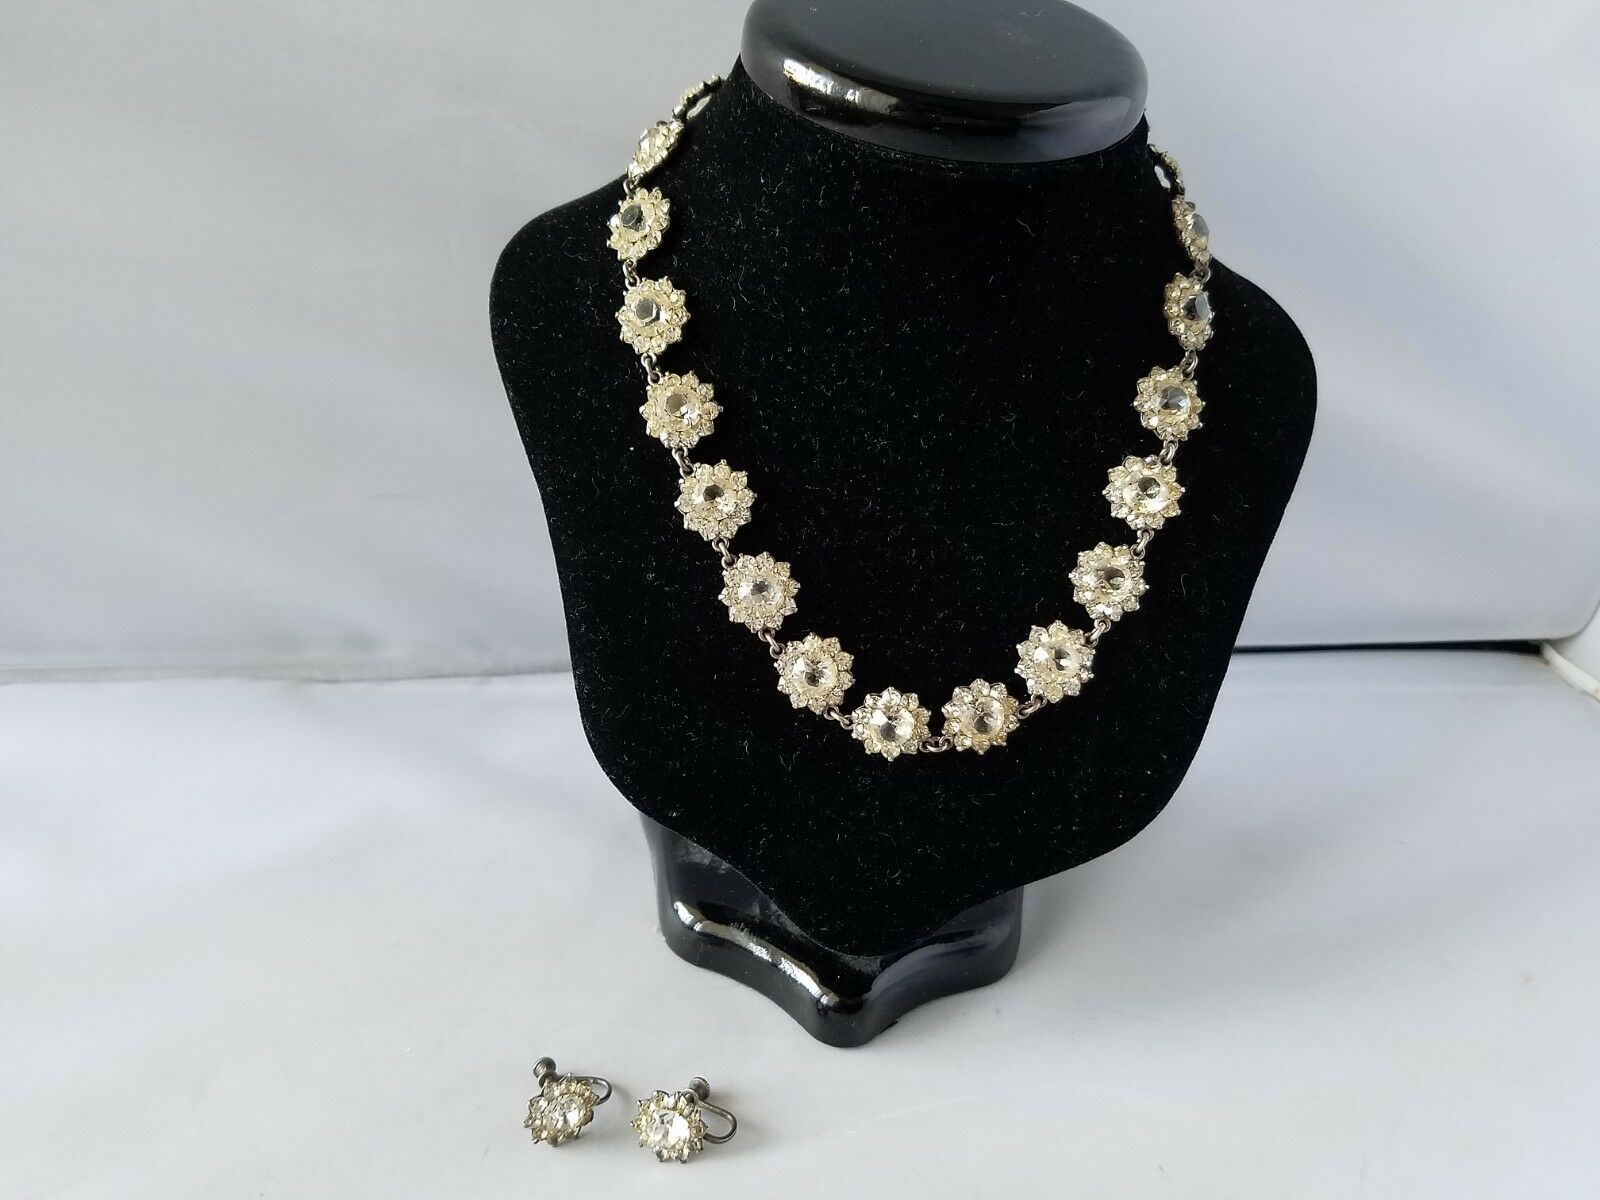 Vintage Fashion Jewelry Set Necklace Earrings Silver Tone Crystal Choker